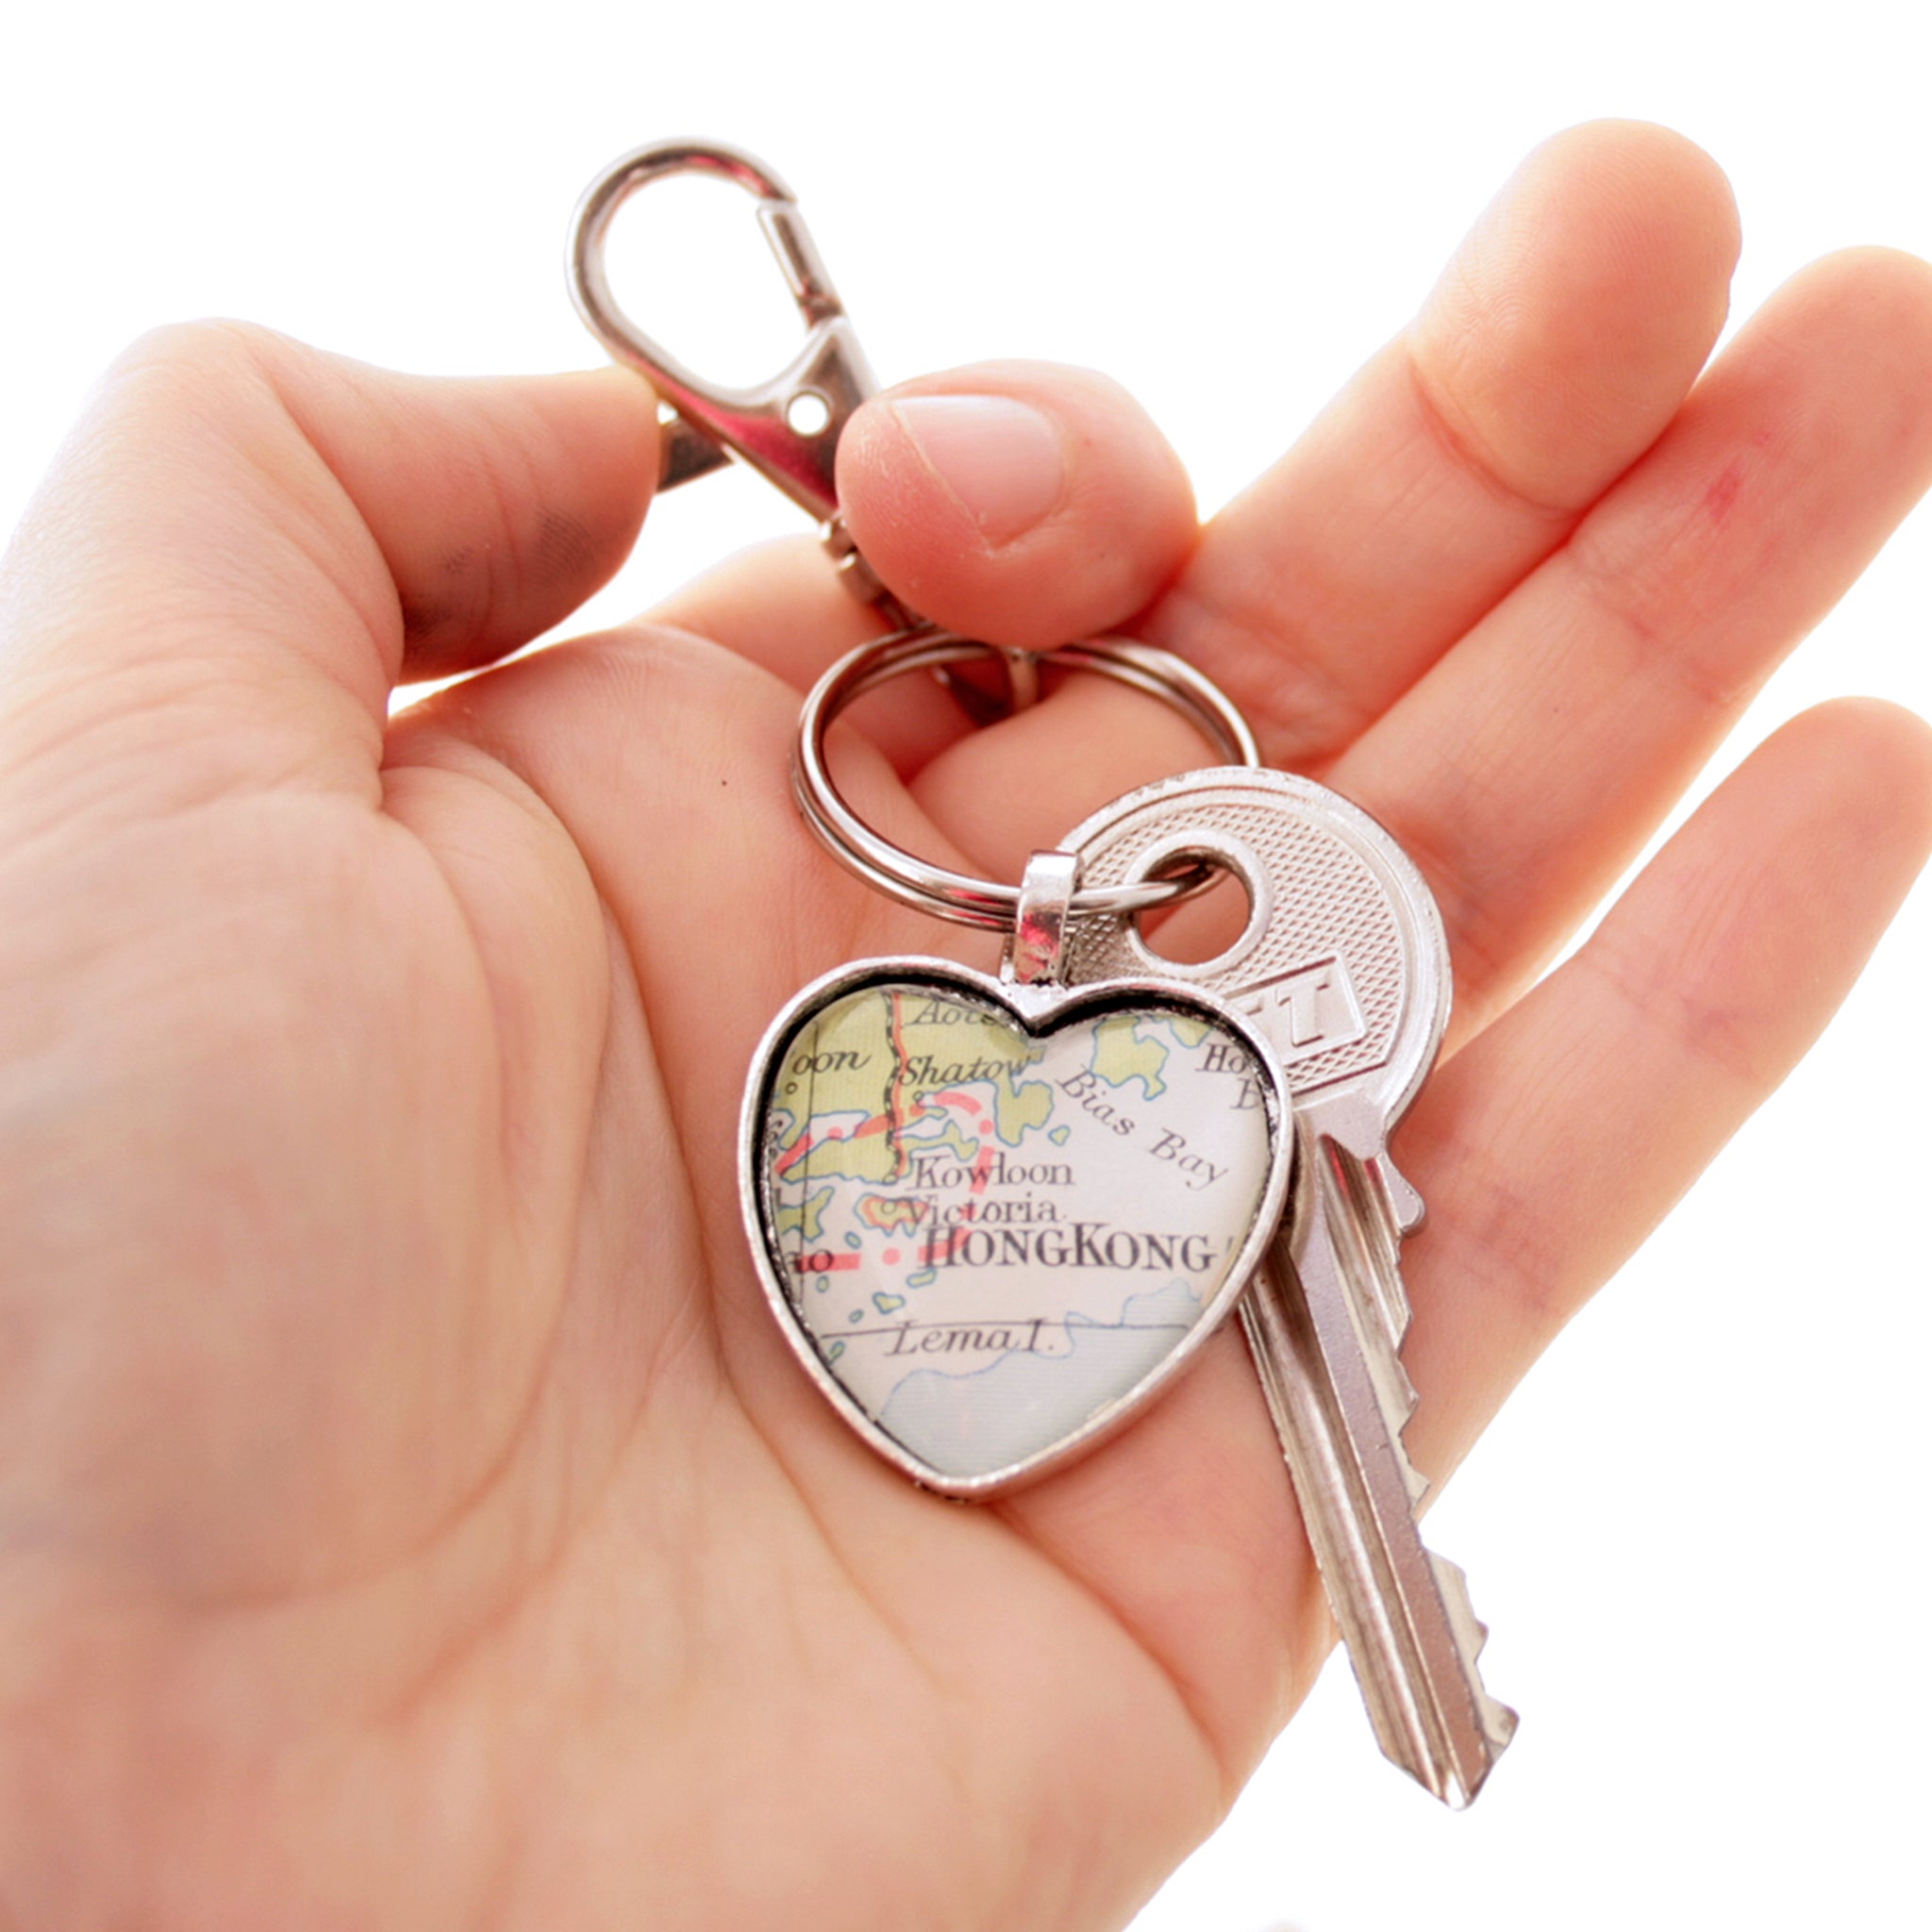 Hold in hand Heart shaped keychain in silver tone featuring map of Hong Kong